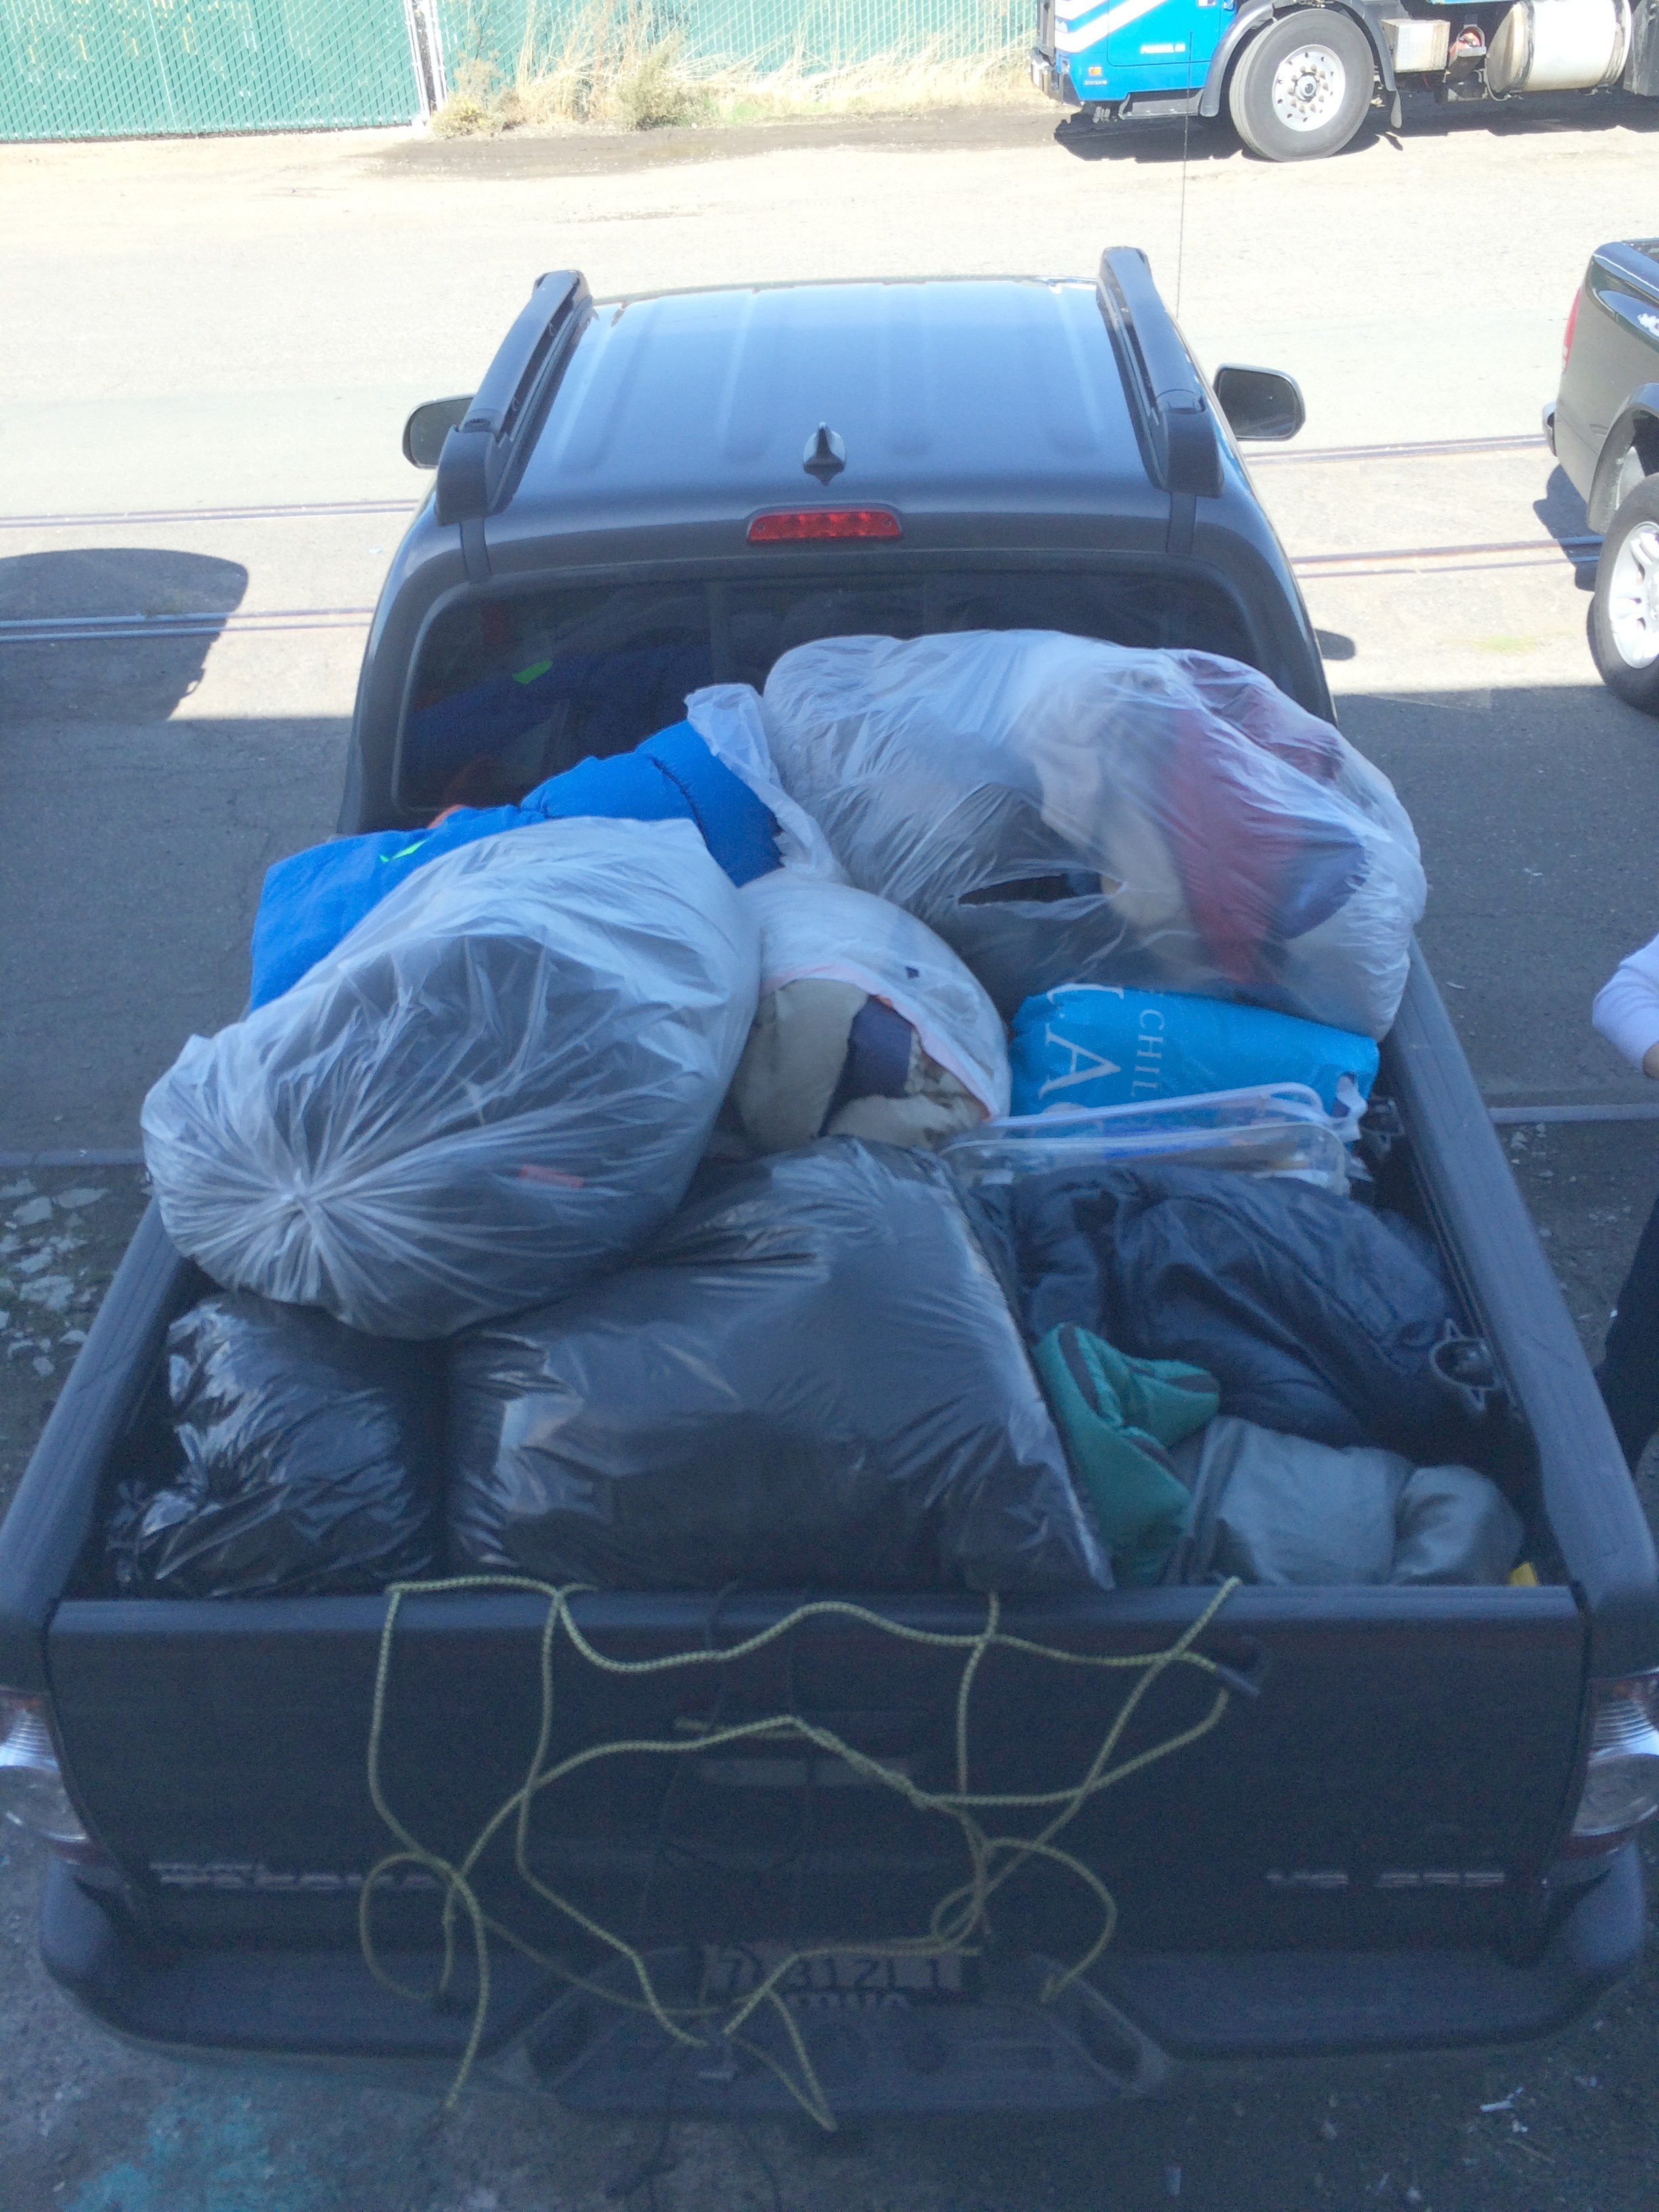 Loaded shipment for homeless in Redding